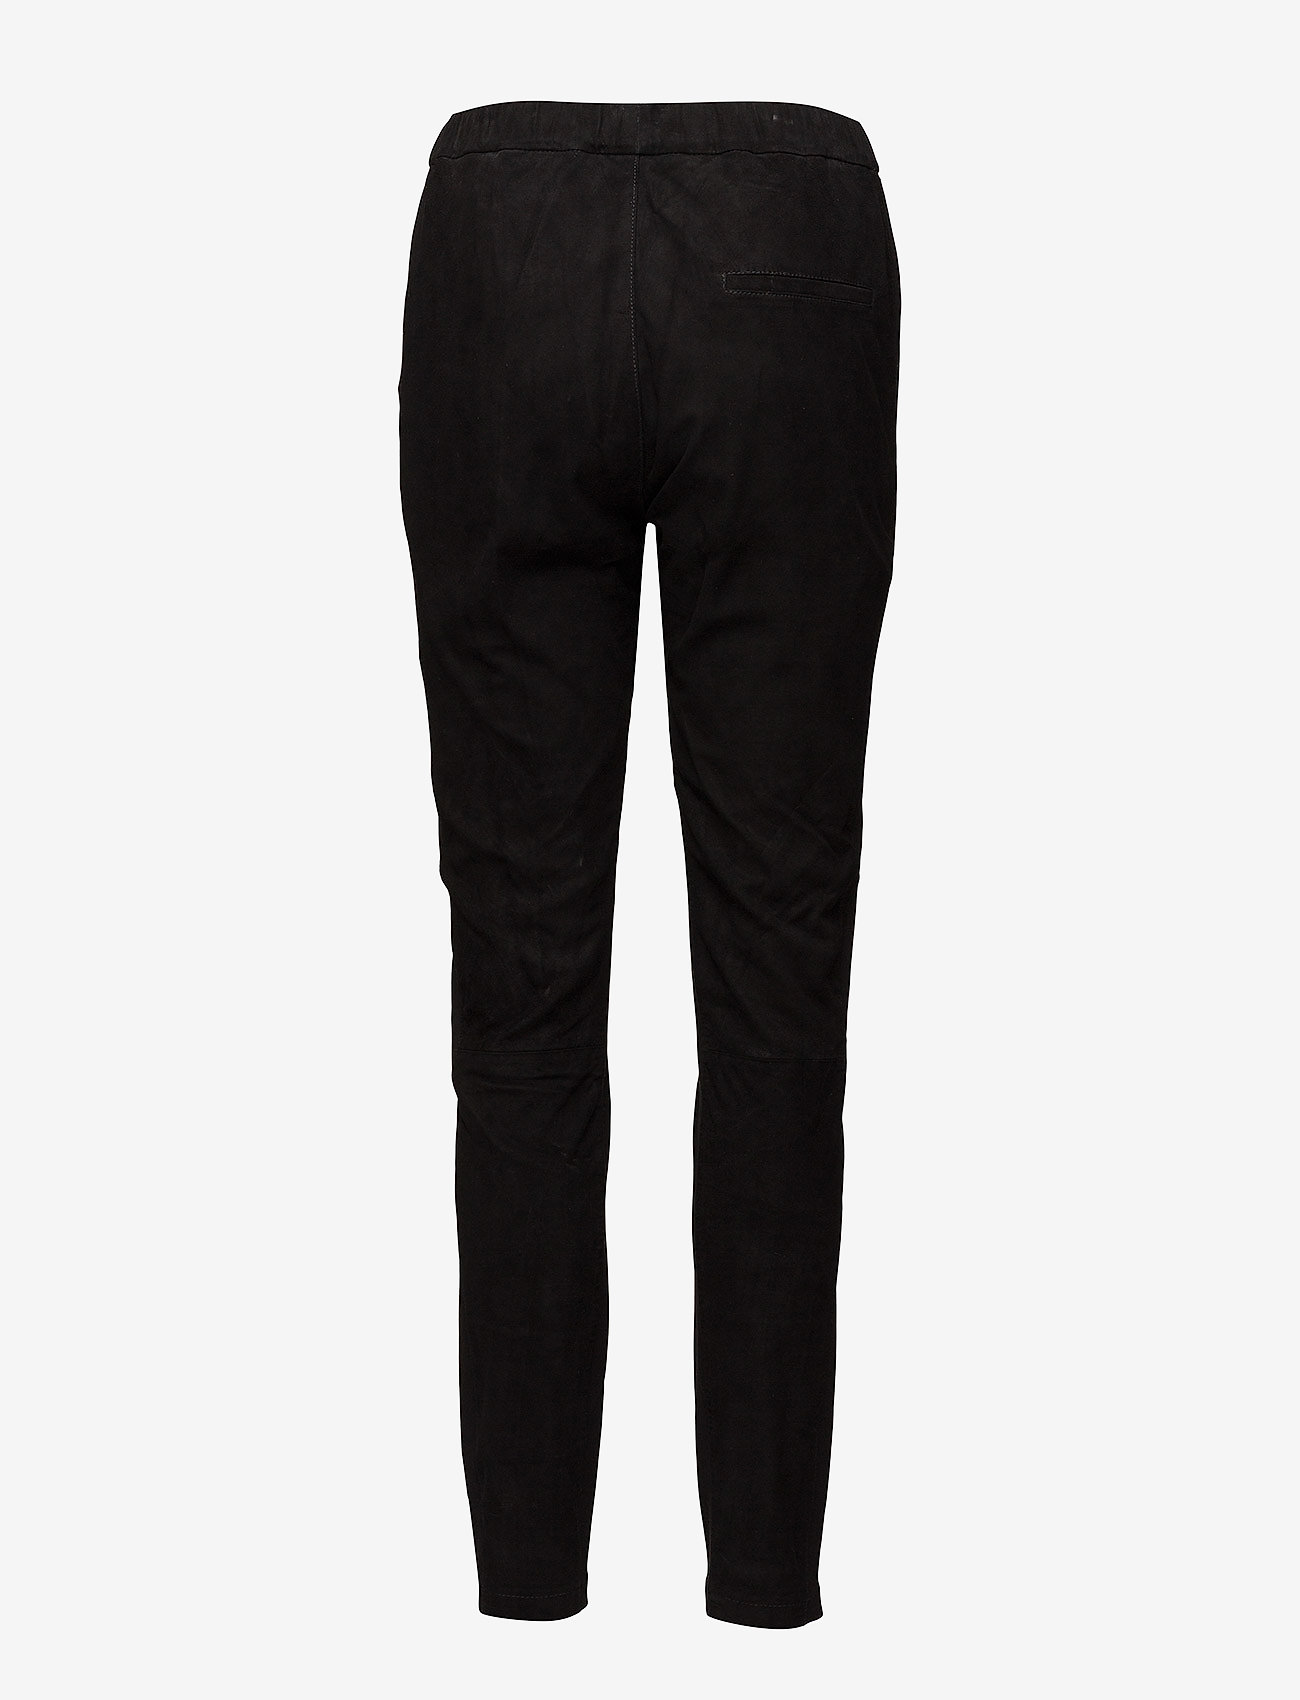 Coster Copenhagen - Suede and jersey pants - pantalons en cuir - black